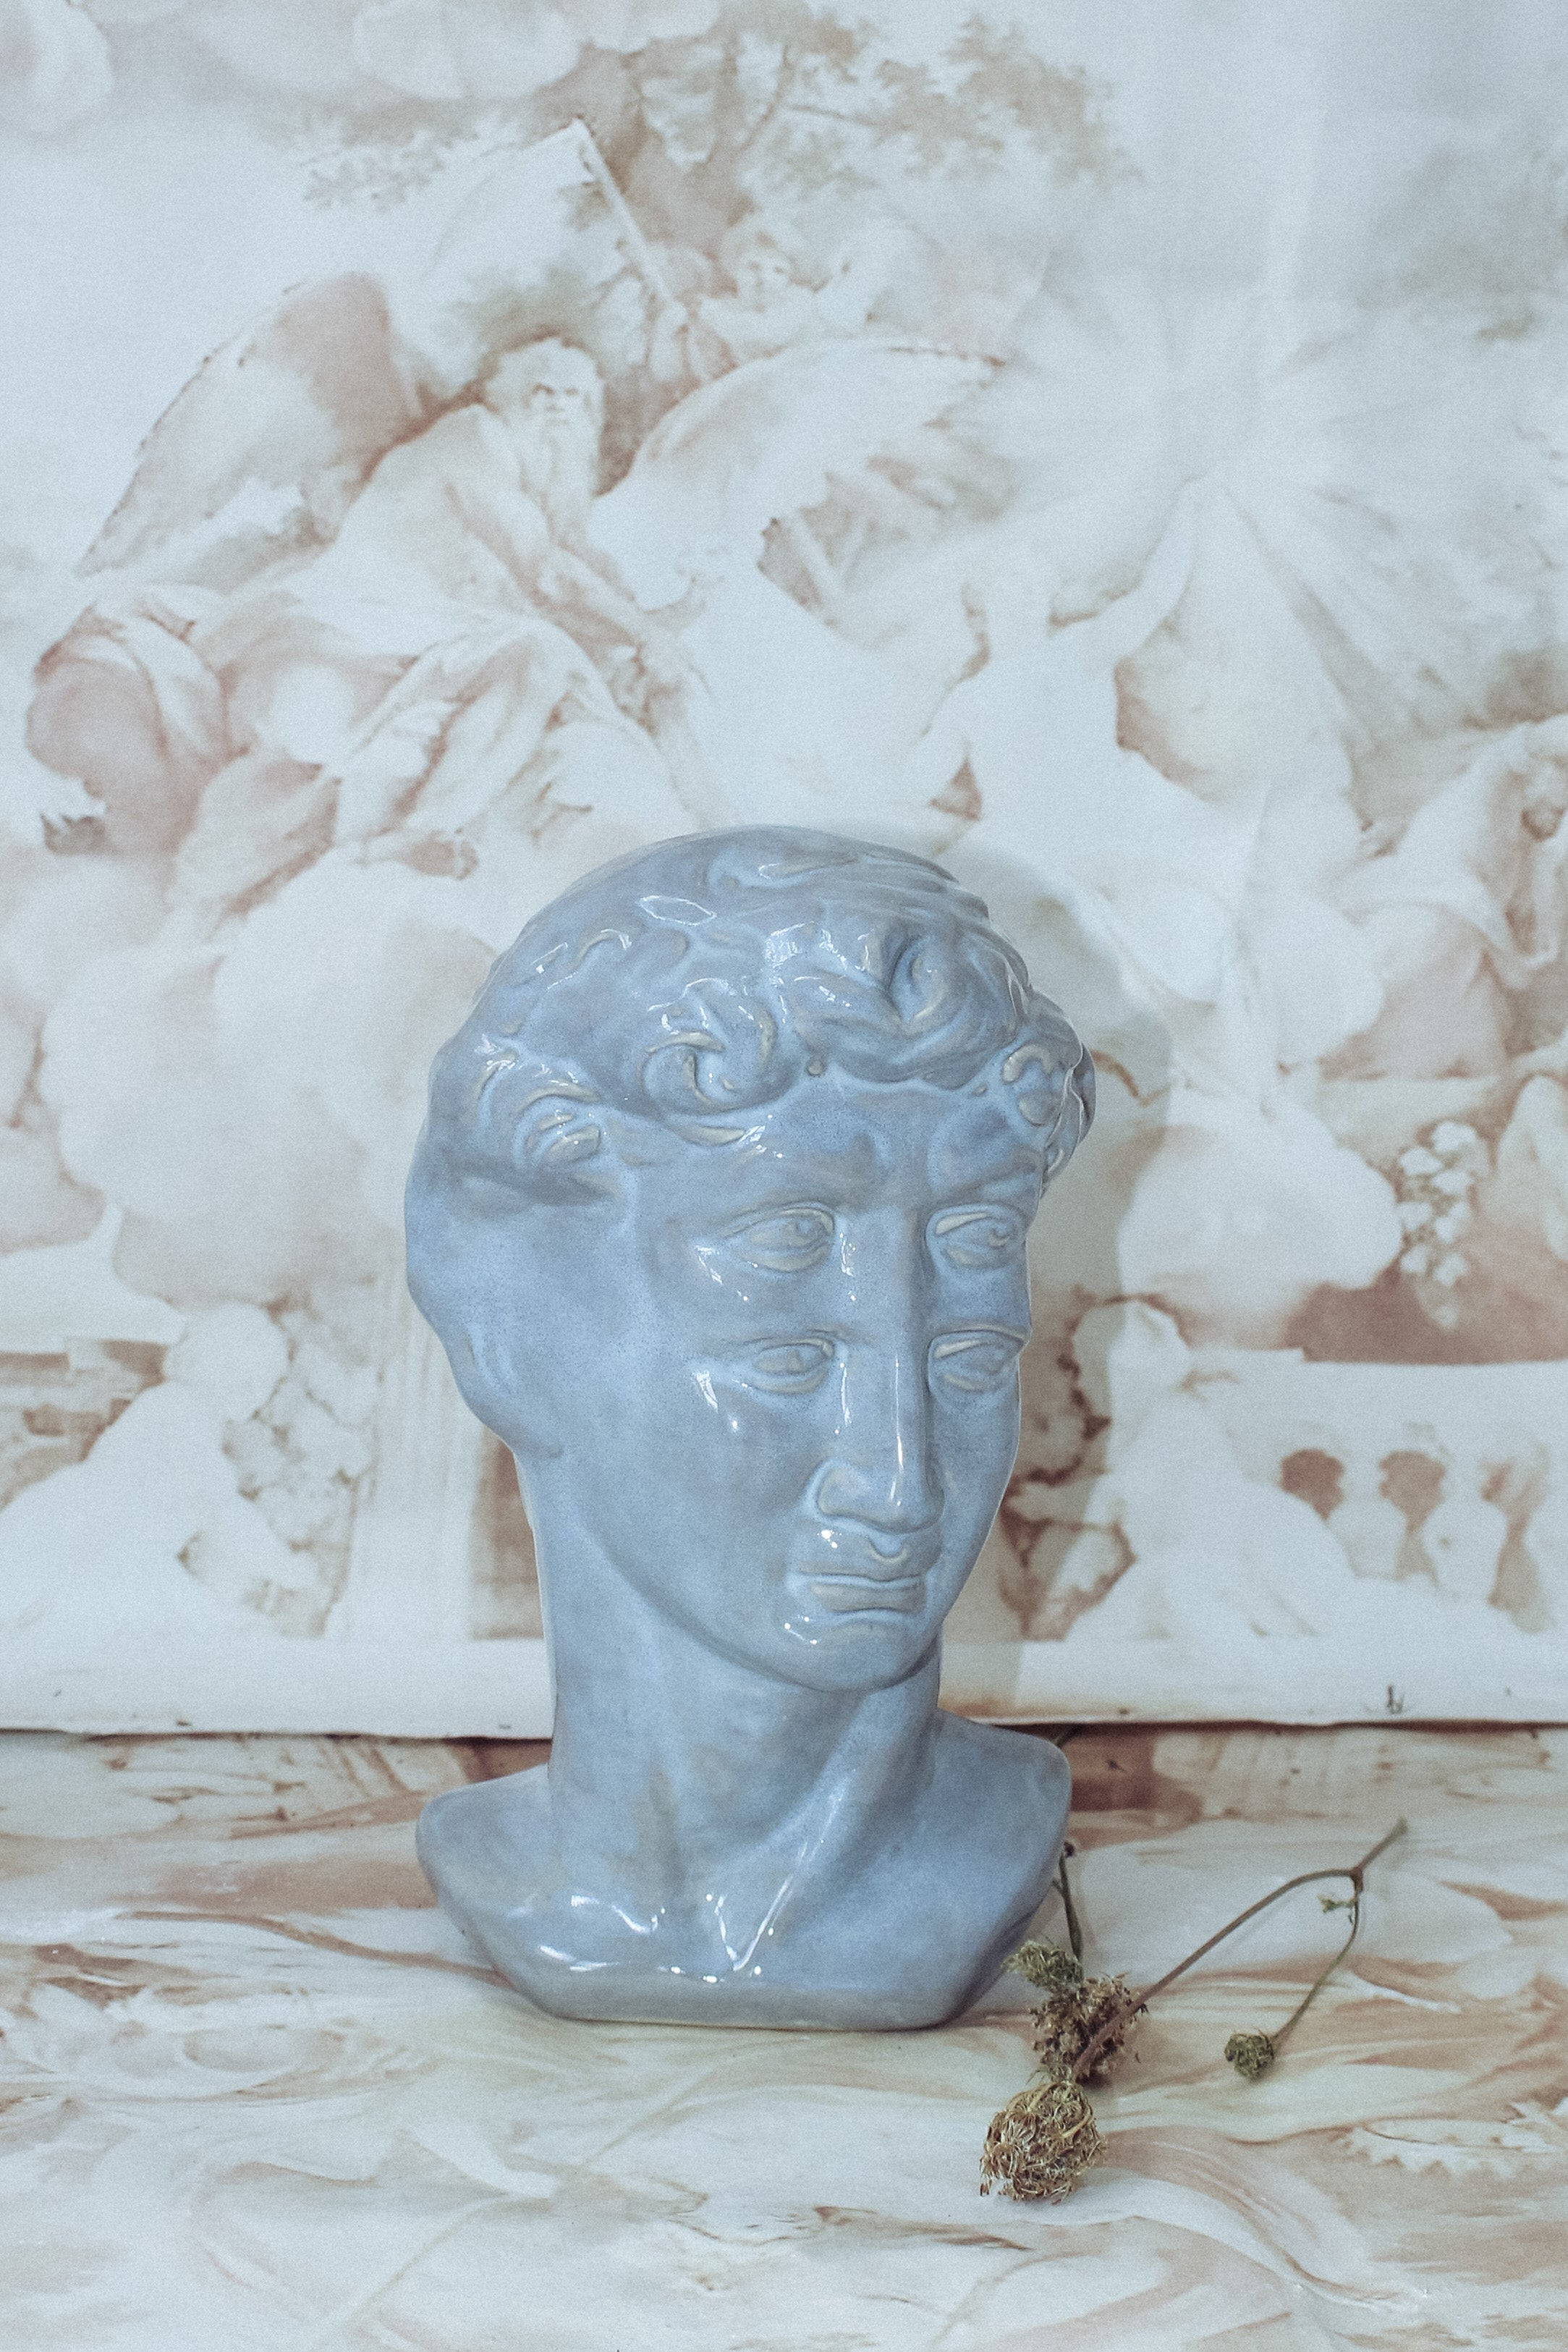 DAVID DEUX FOIS BUST - DUSTY BLUE